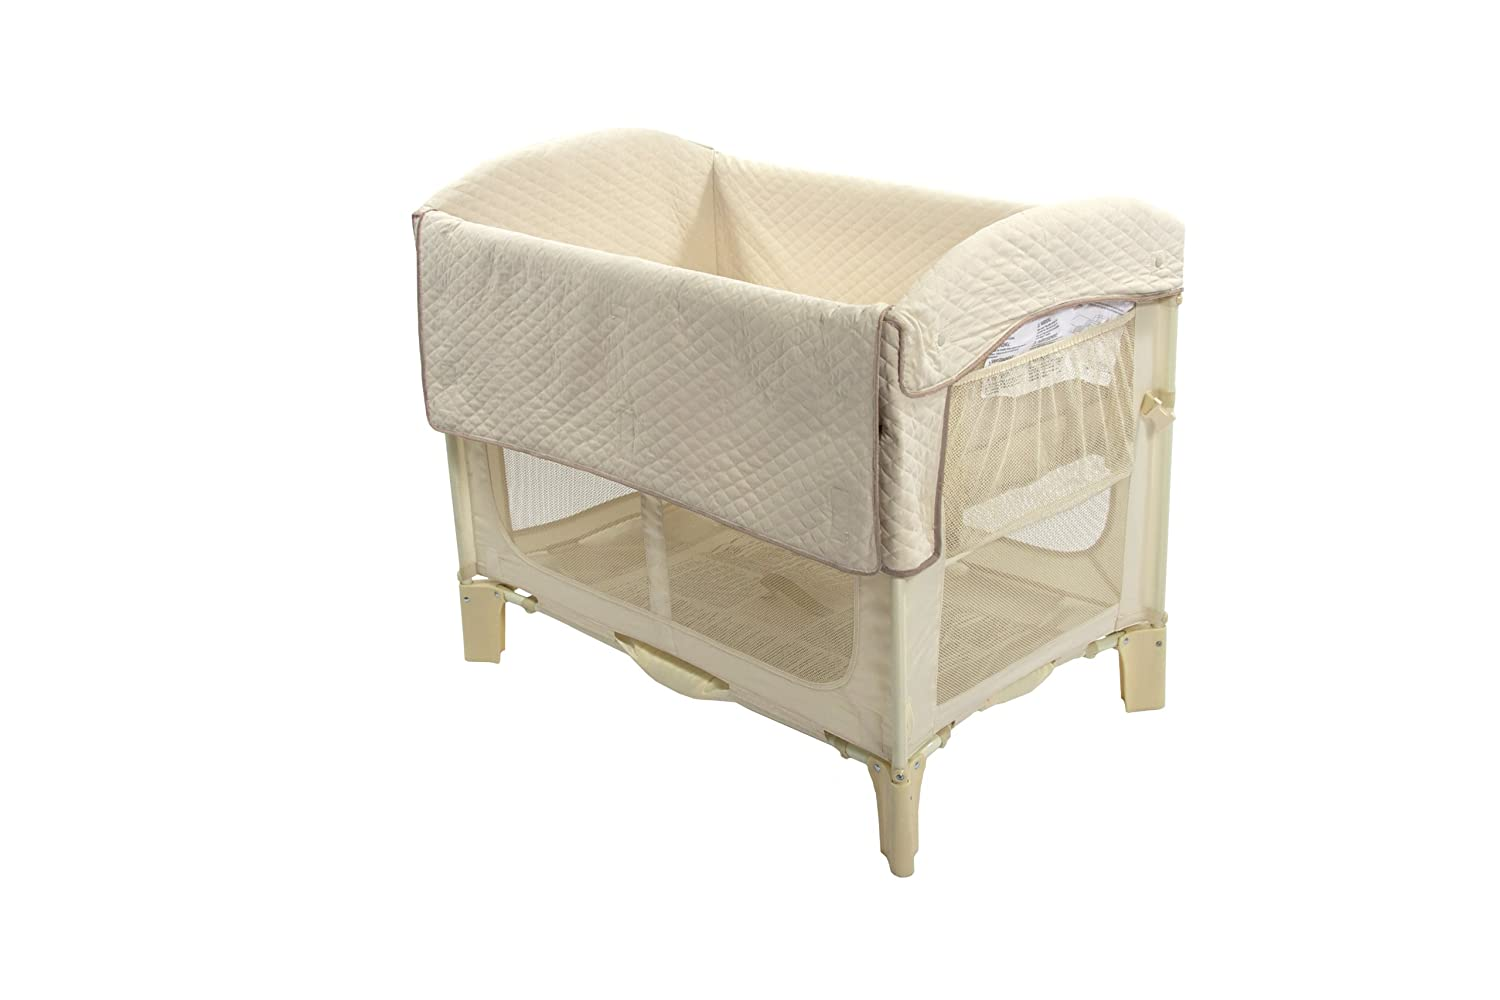 Baby bed extension co sleeper - Amazon Com Arm S Reach Ideal Arc Original Co Sleeper Bedside Bassinet Natural Baby